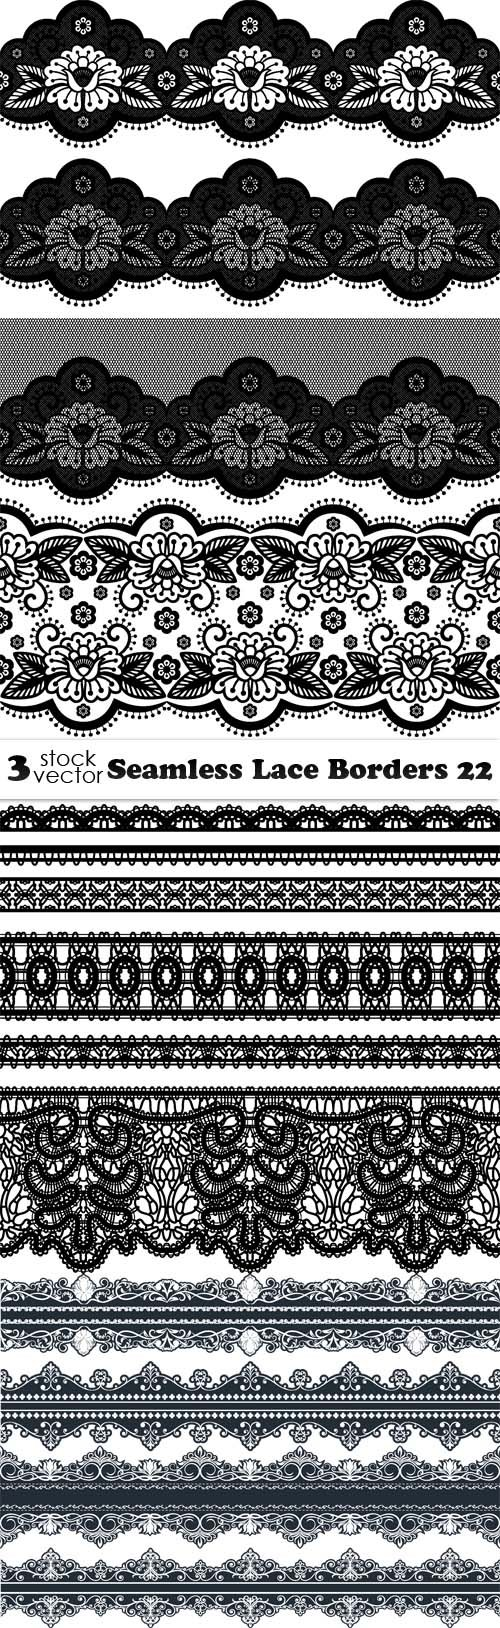 Vectors - Seamless Lace Borders 22